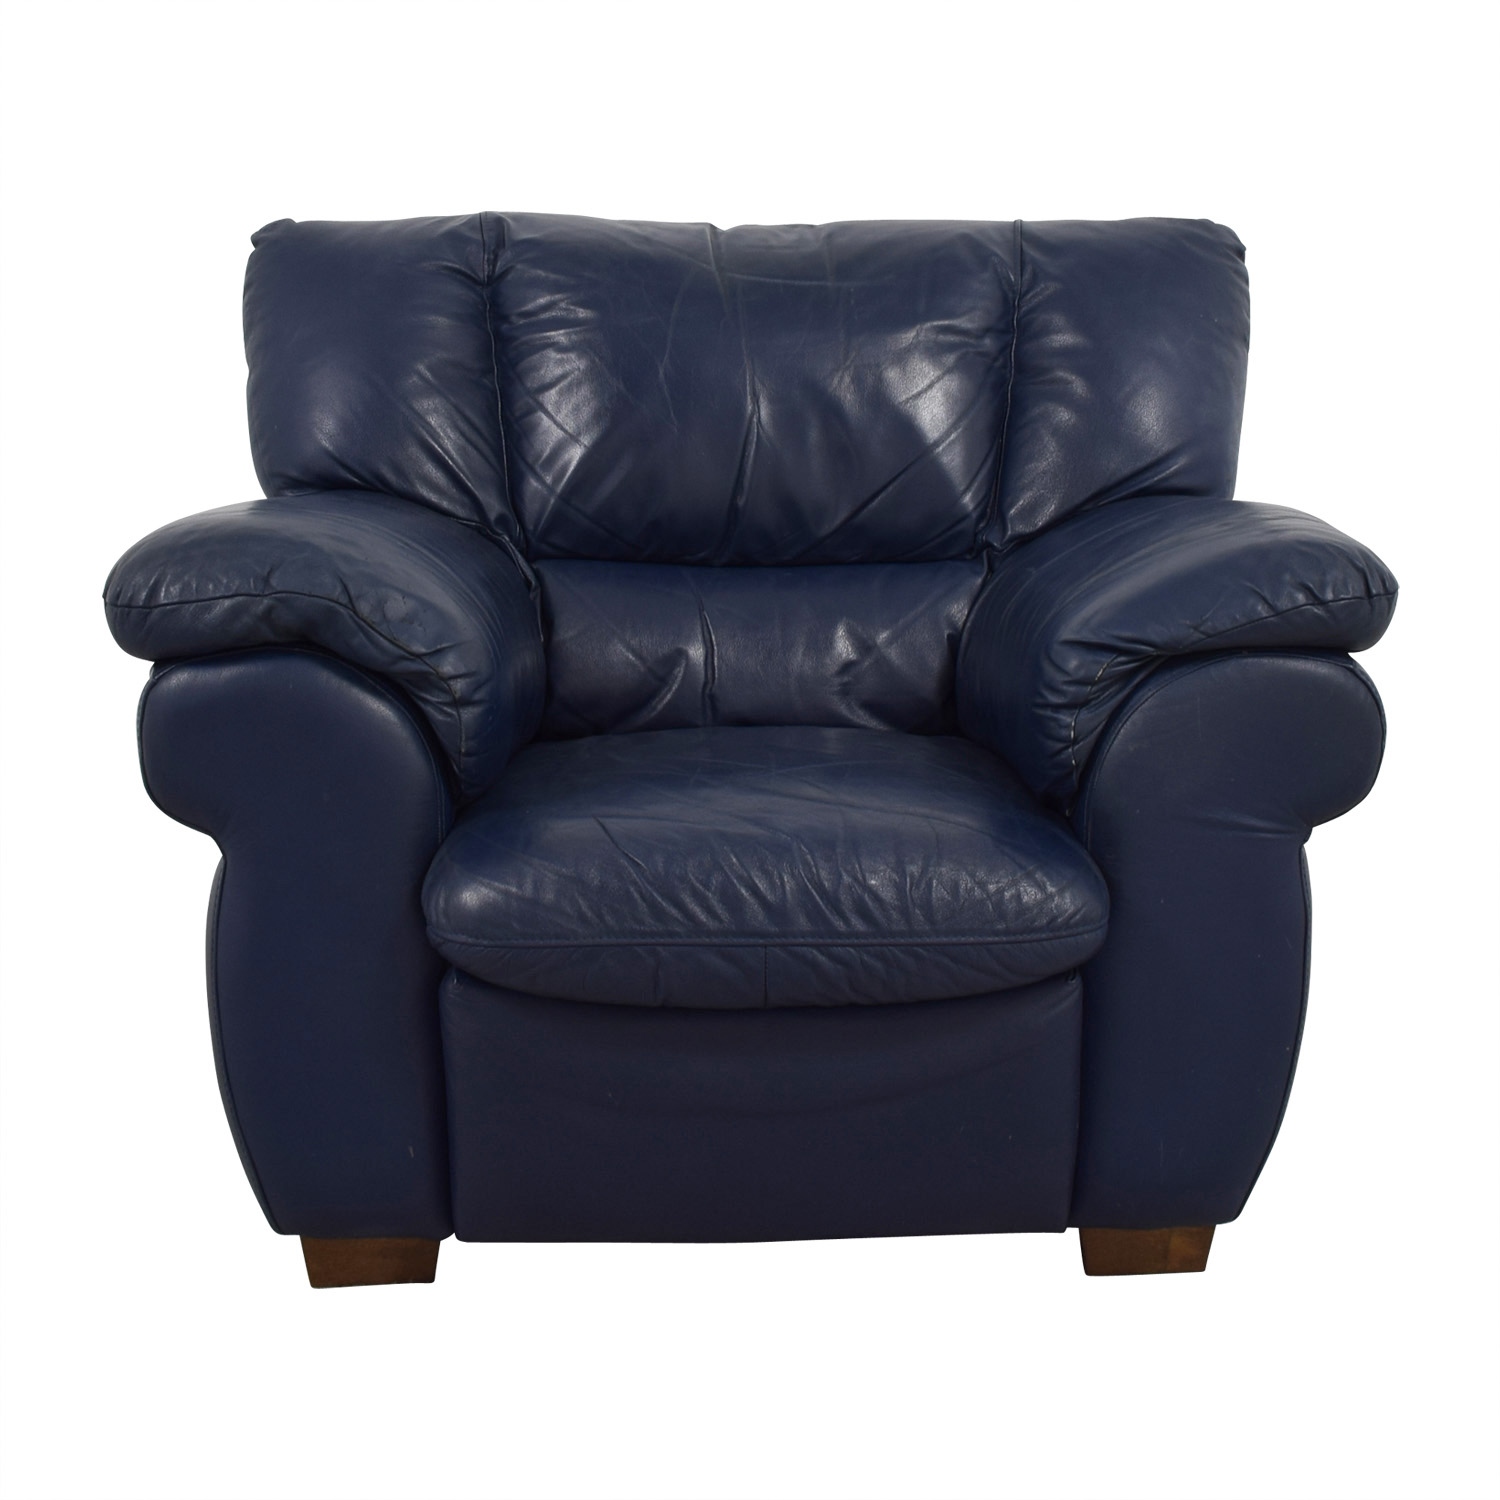 90 OFF  Macys Macys Navy Blue Leather Sofa Chair  Chairs